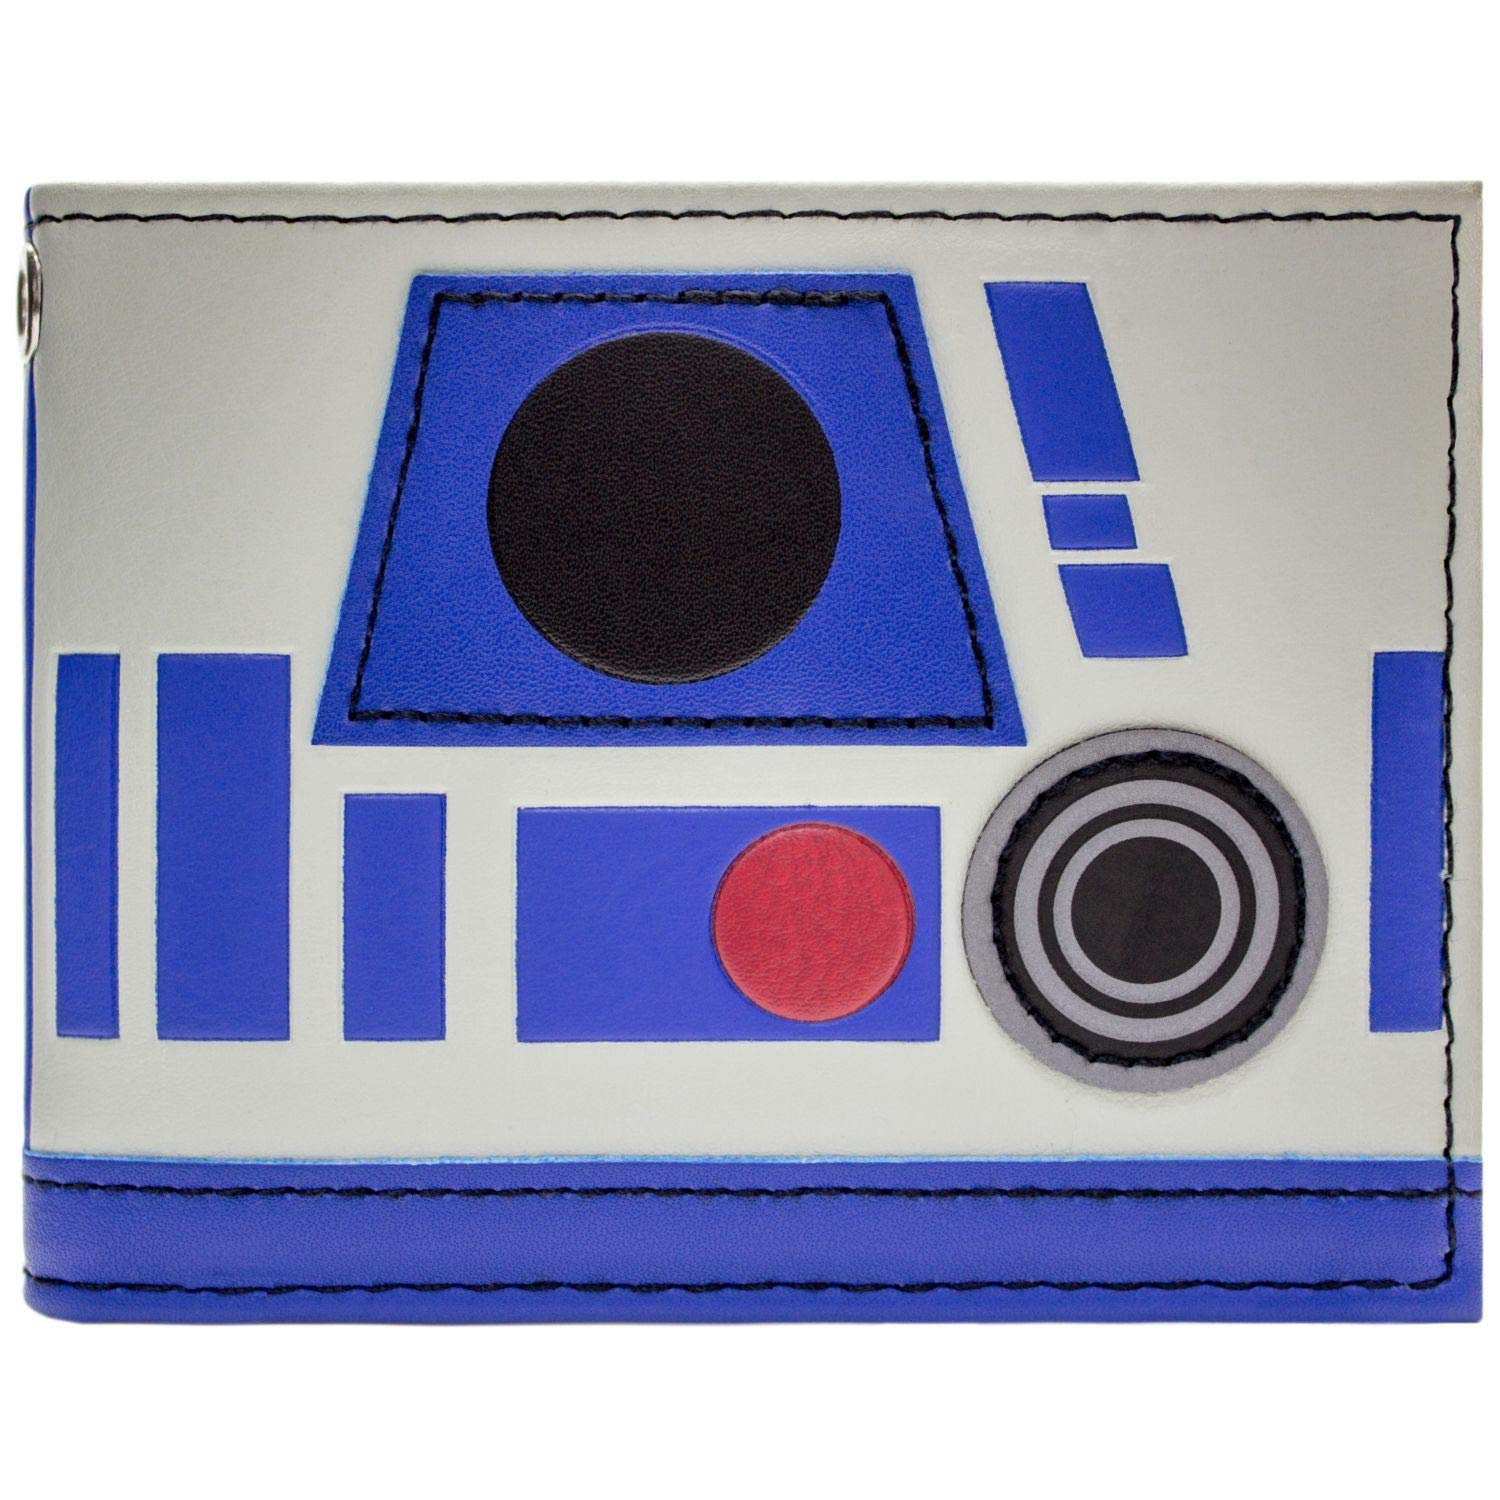 Disney Star Wars R2-D2 Bleu Portefeuille 28798